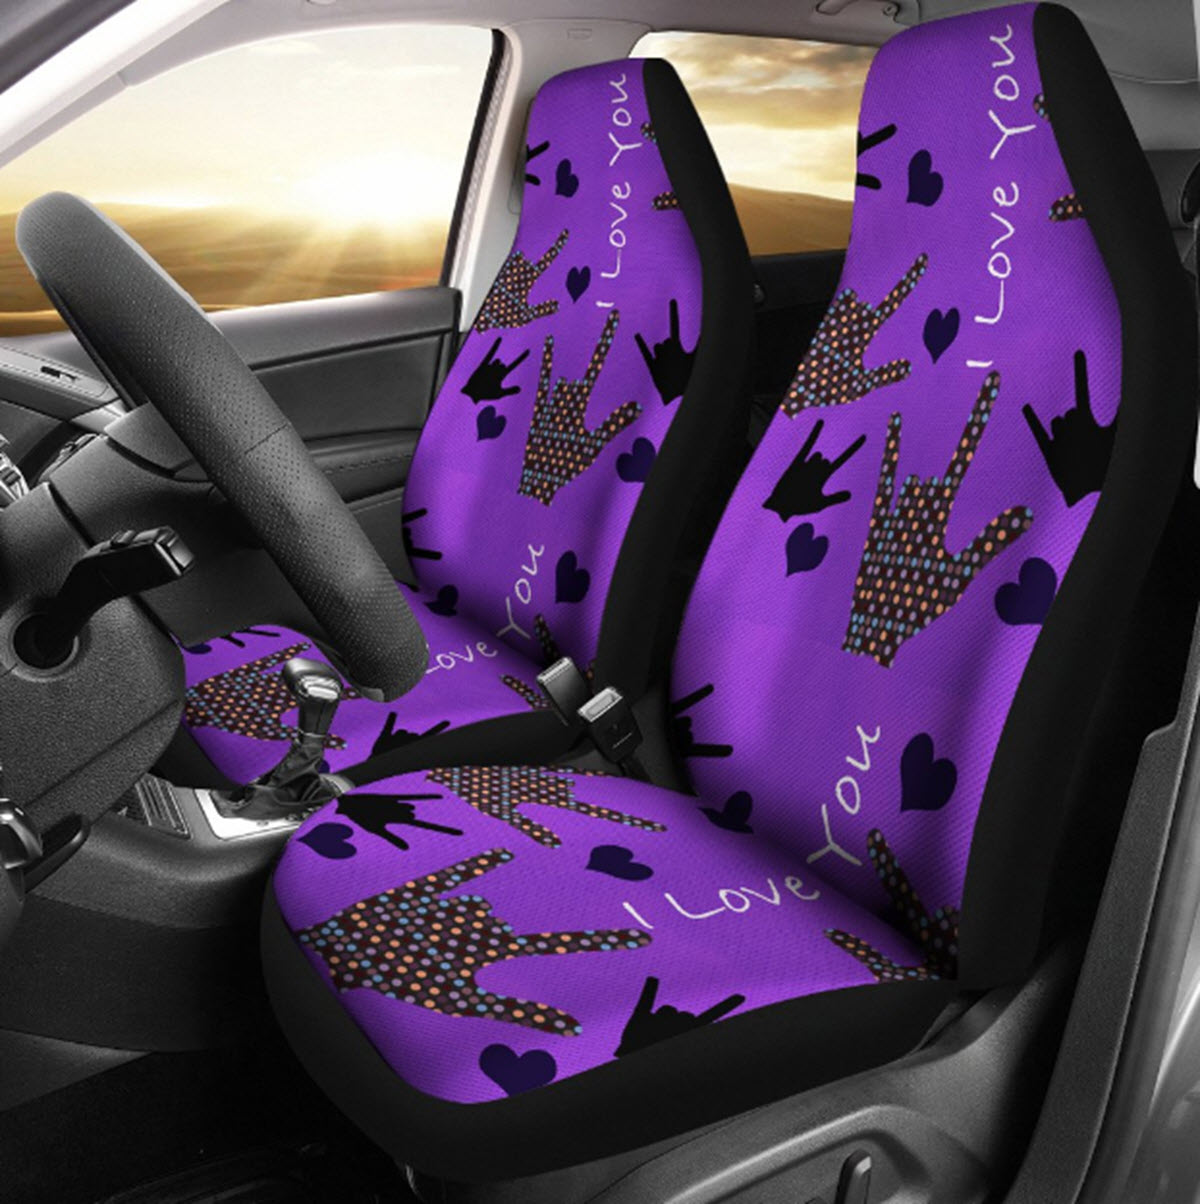 Girly Seat Covers At Trends Mart Club